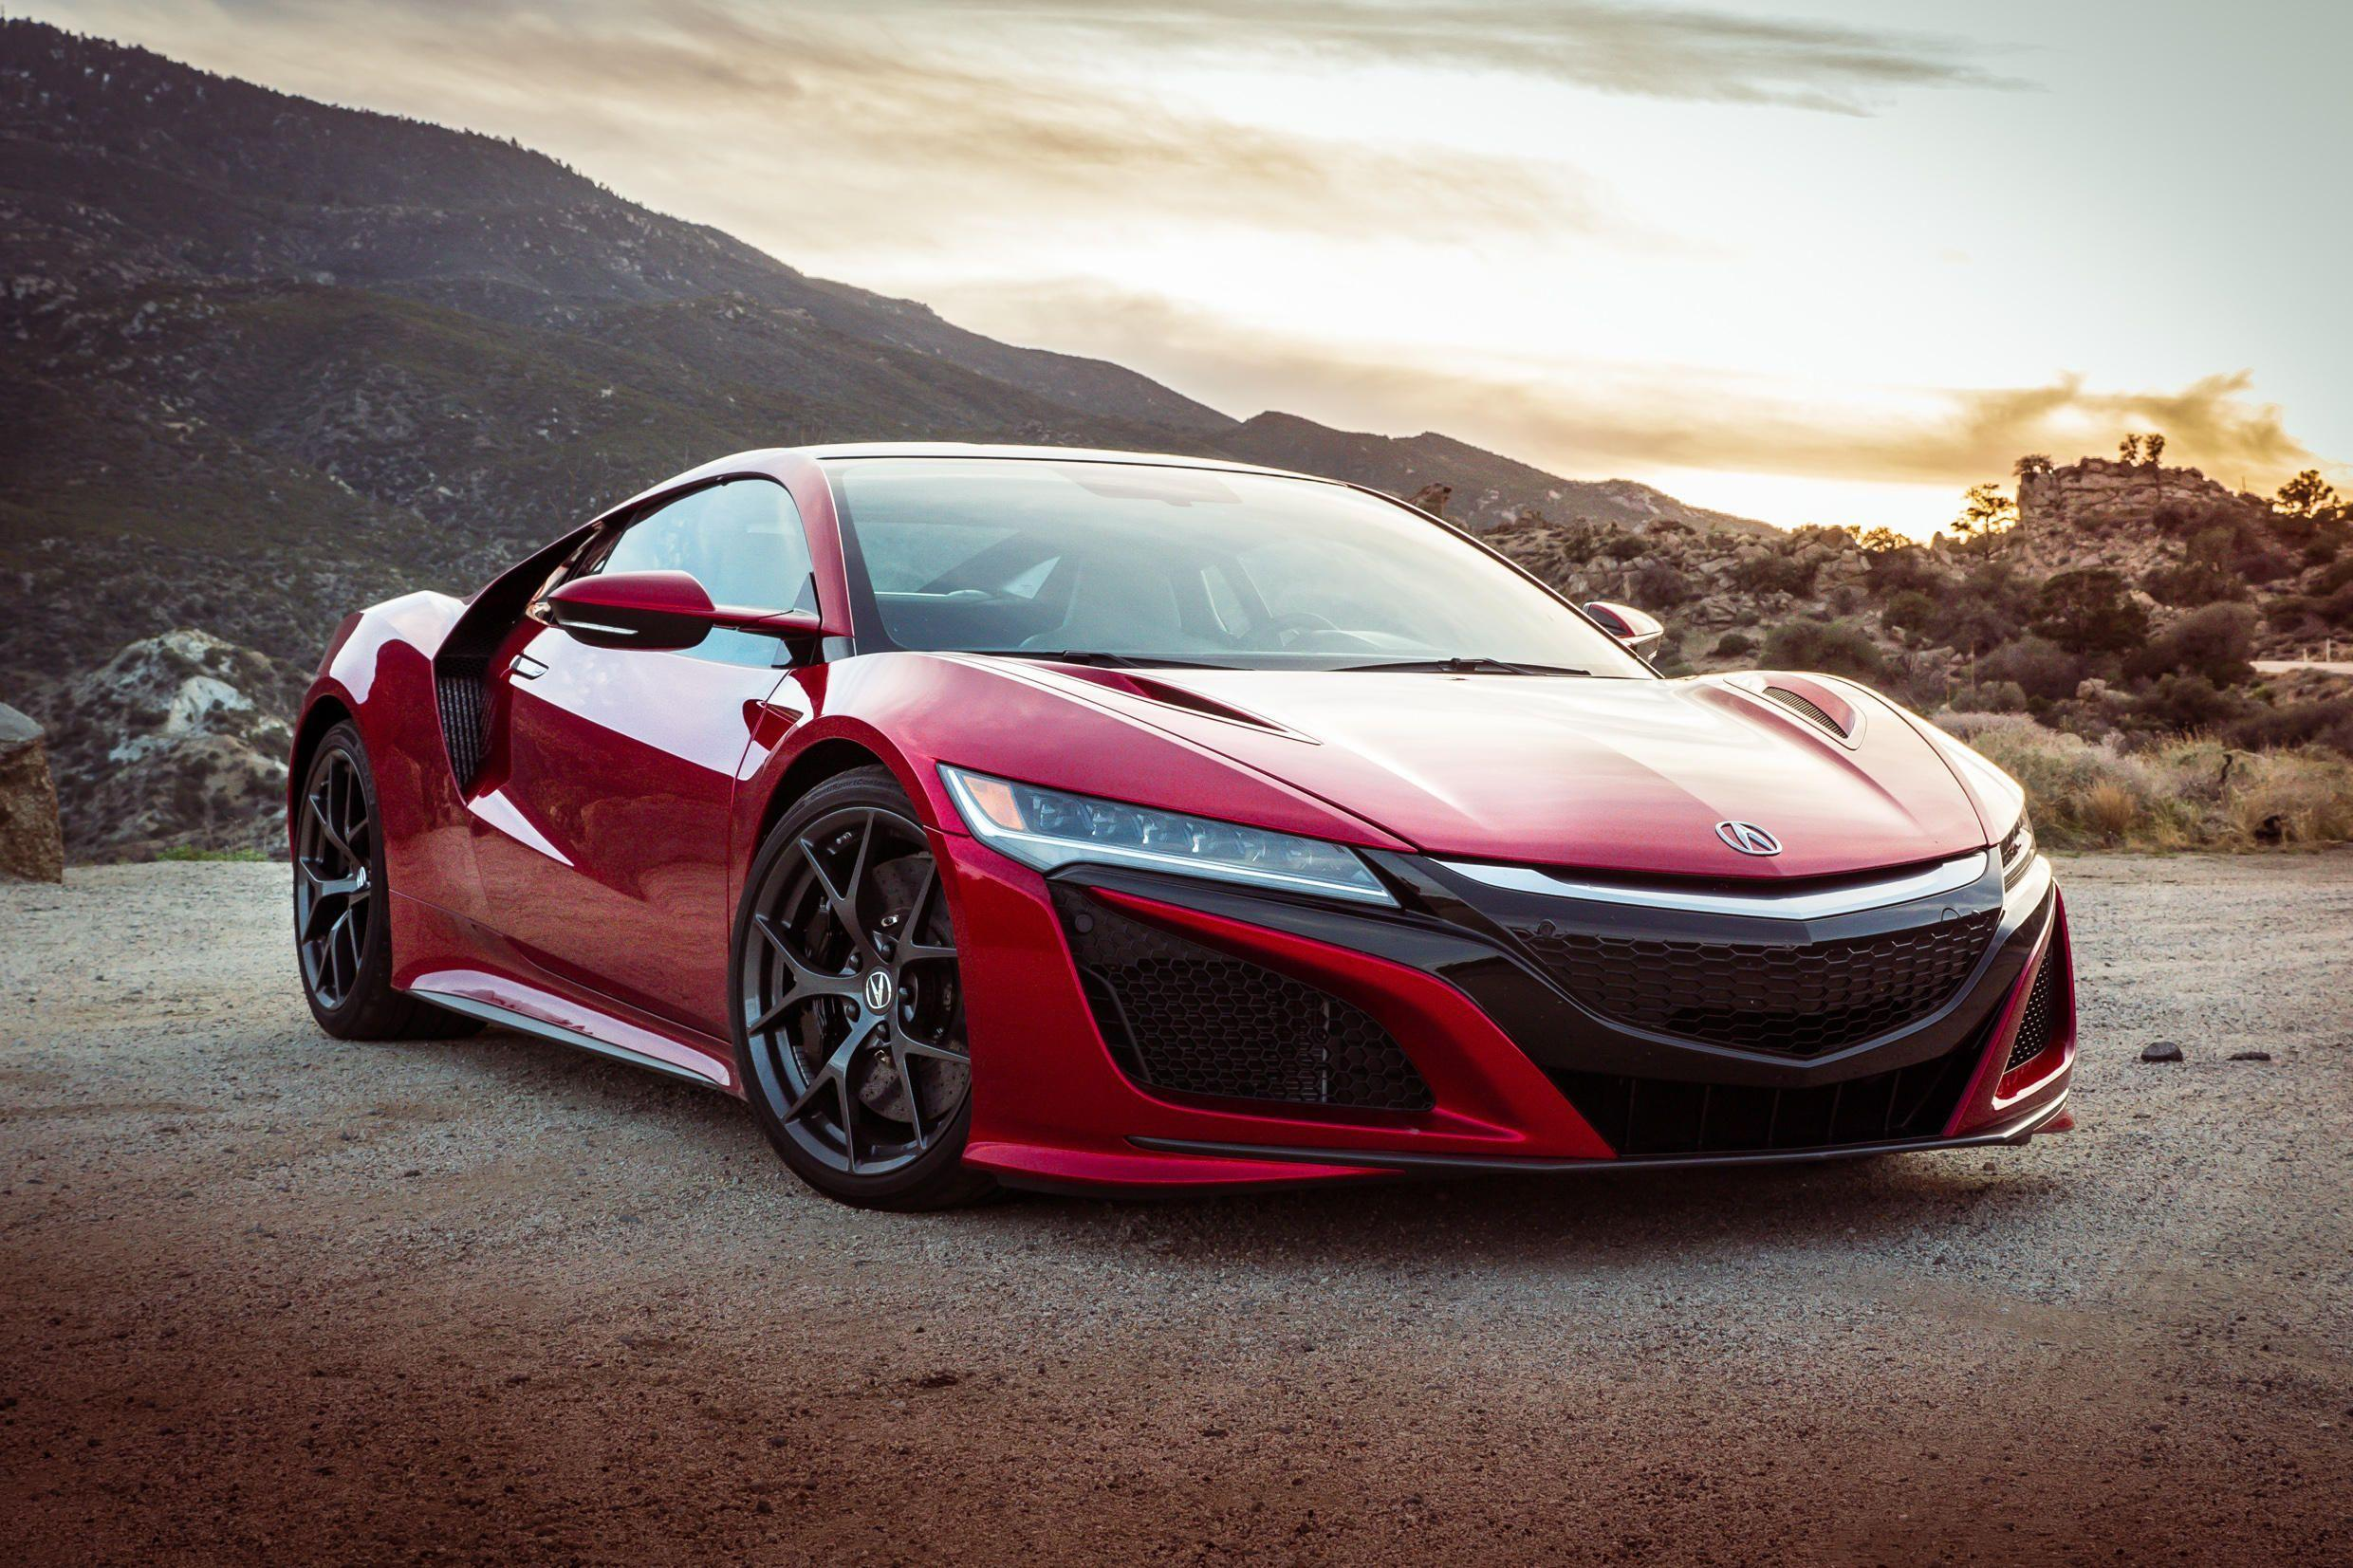 2019 Acura NSX Wallpapers Background Images Photos Pictures 2480x1653